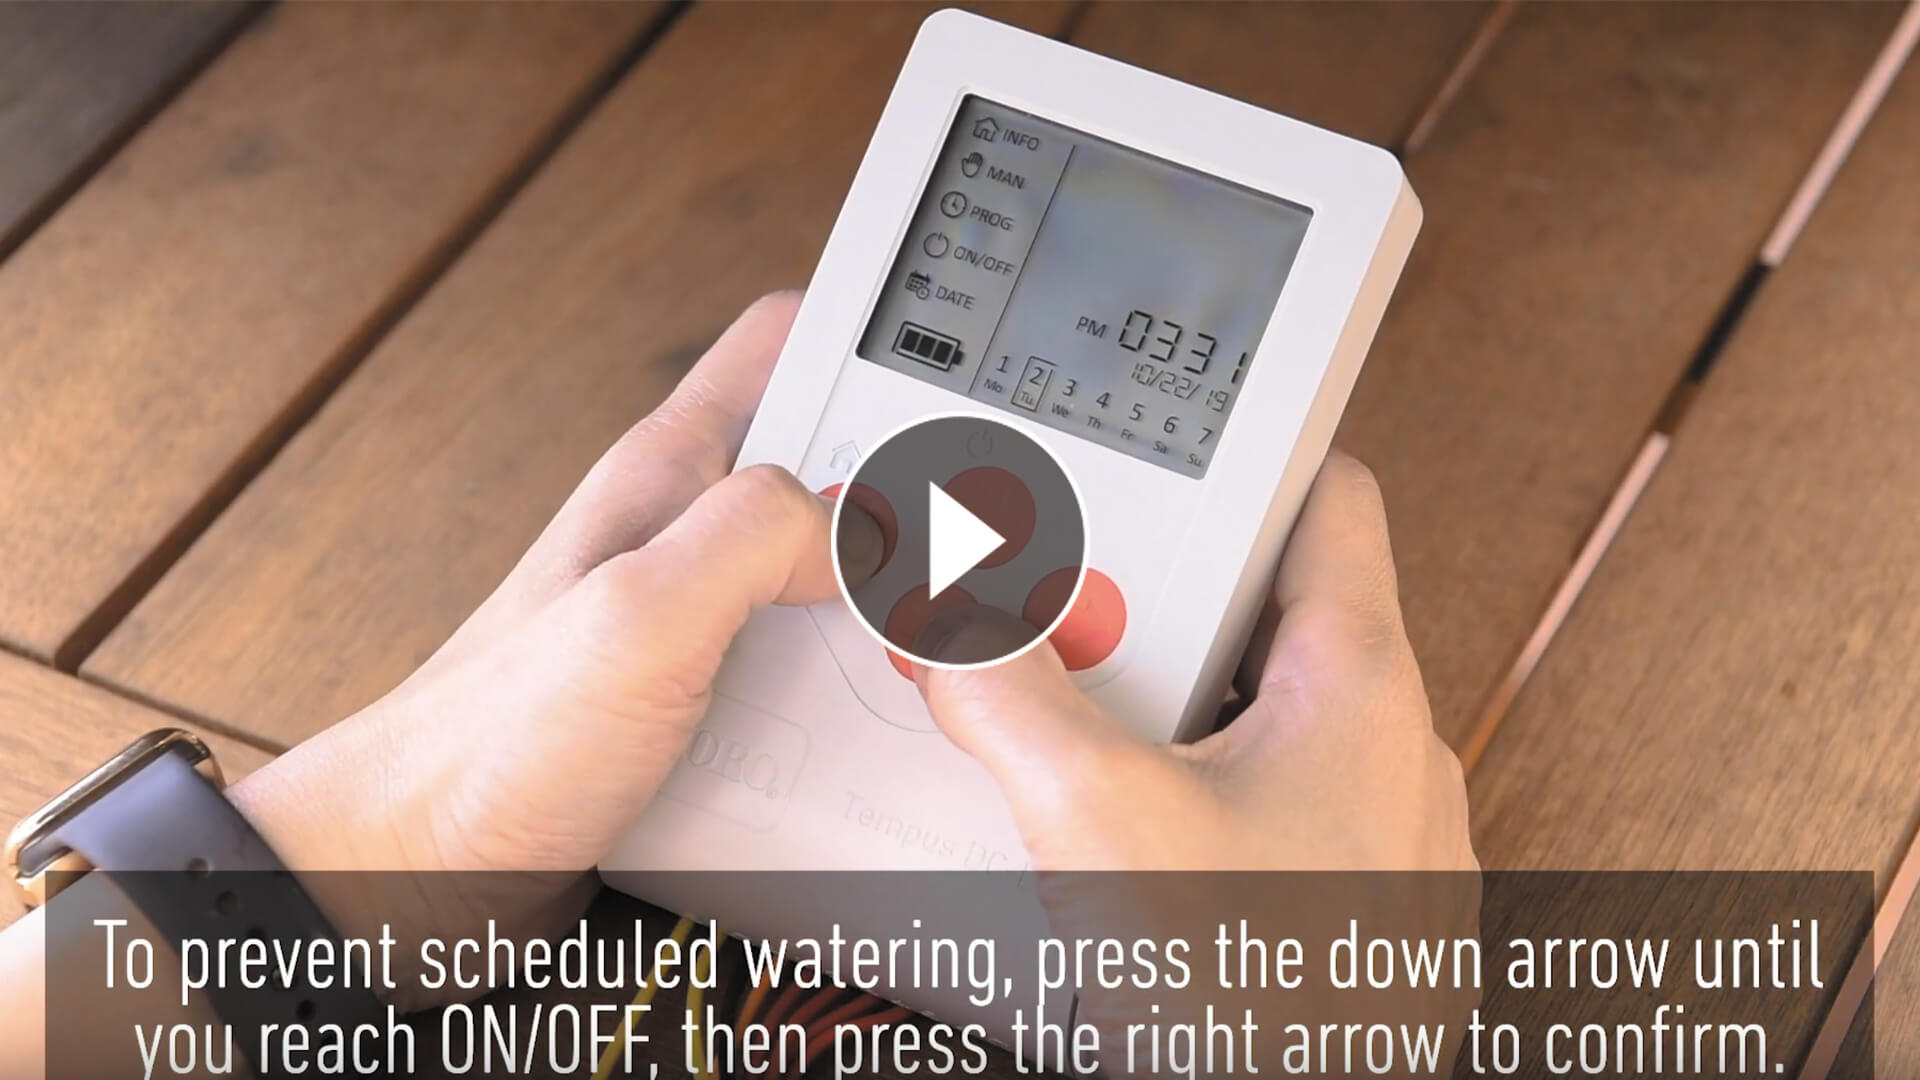 Tempus Controller LCD – How To Prevent Scheduled Watering